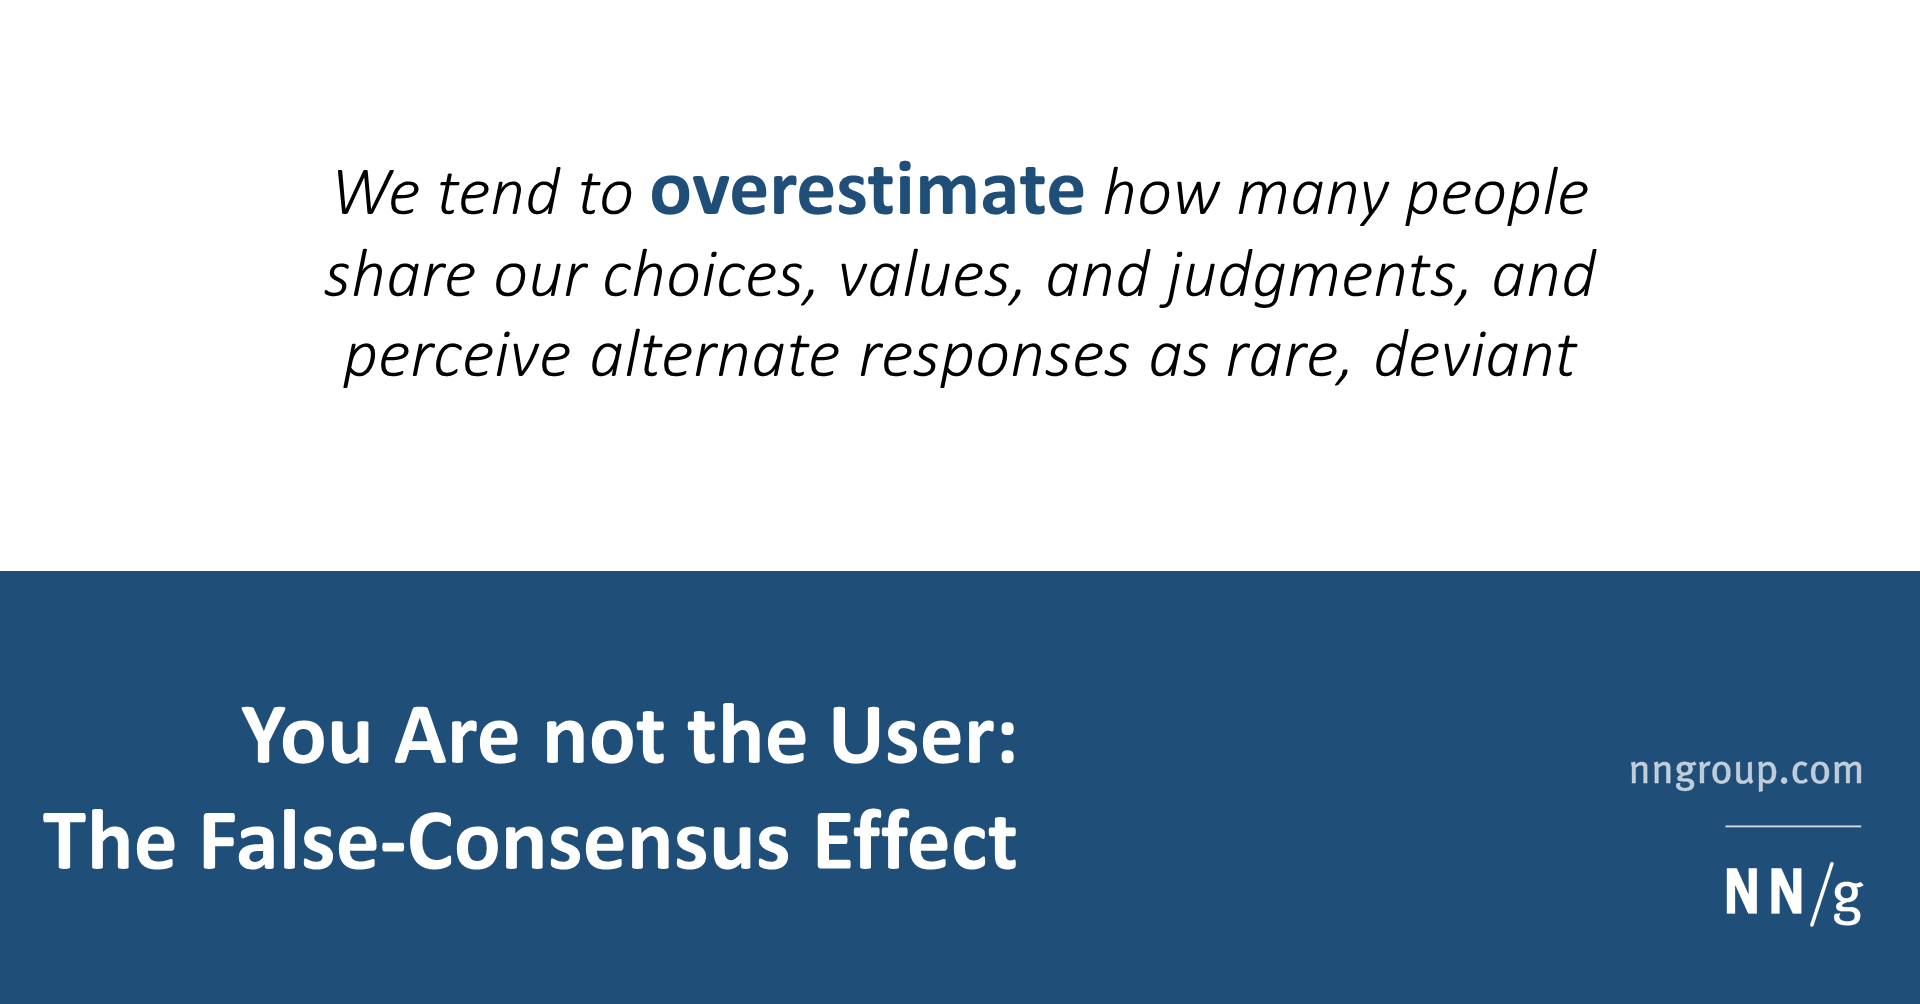 Summary:Designers, developers, and even UX researchers fall prey to the false-consensus effect, projecting their behaviors and reactions onto us